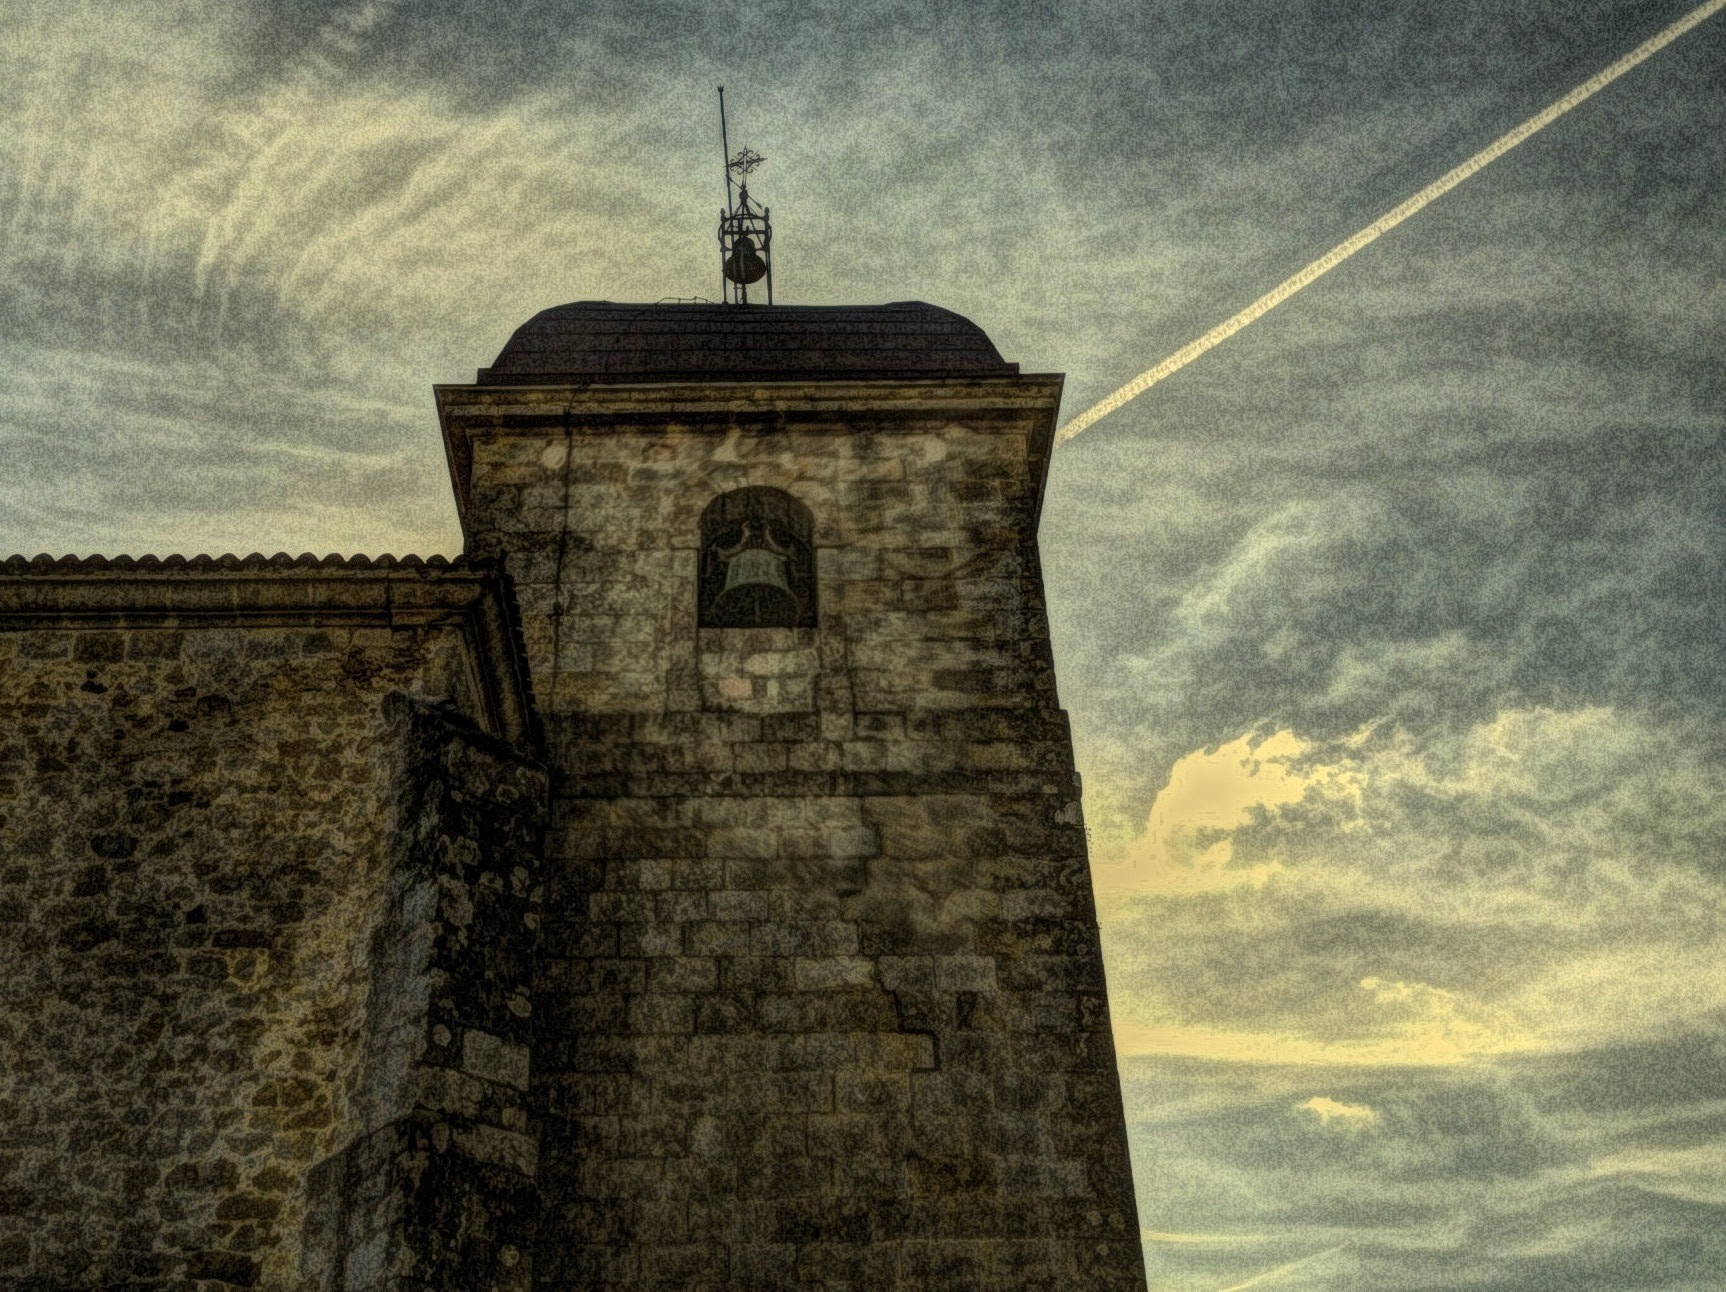 Photograph Divine diagonal by Gustimbaldo Del Piero on 500px